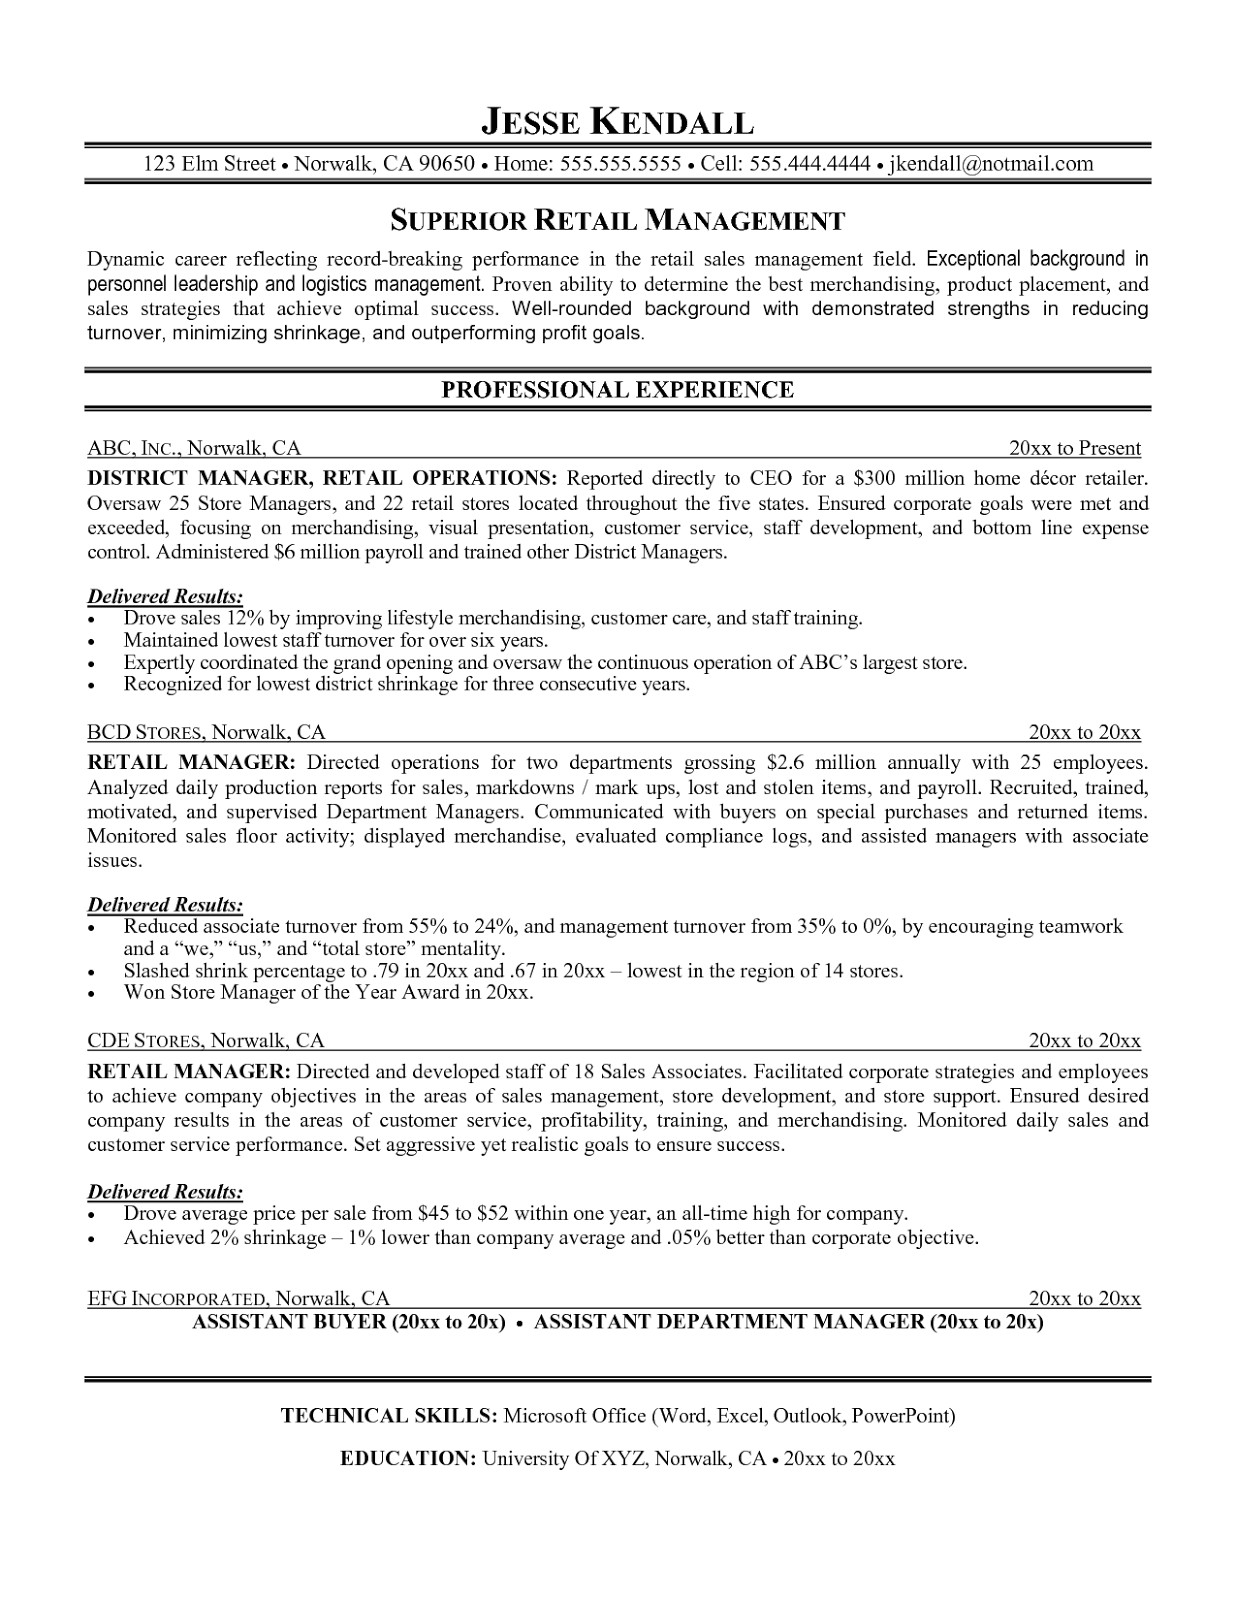 Store Manager Resume Template Retail Management Resume Template Sample Resume Cover